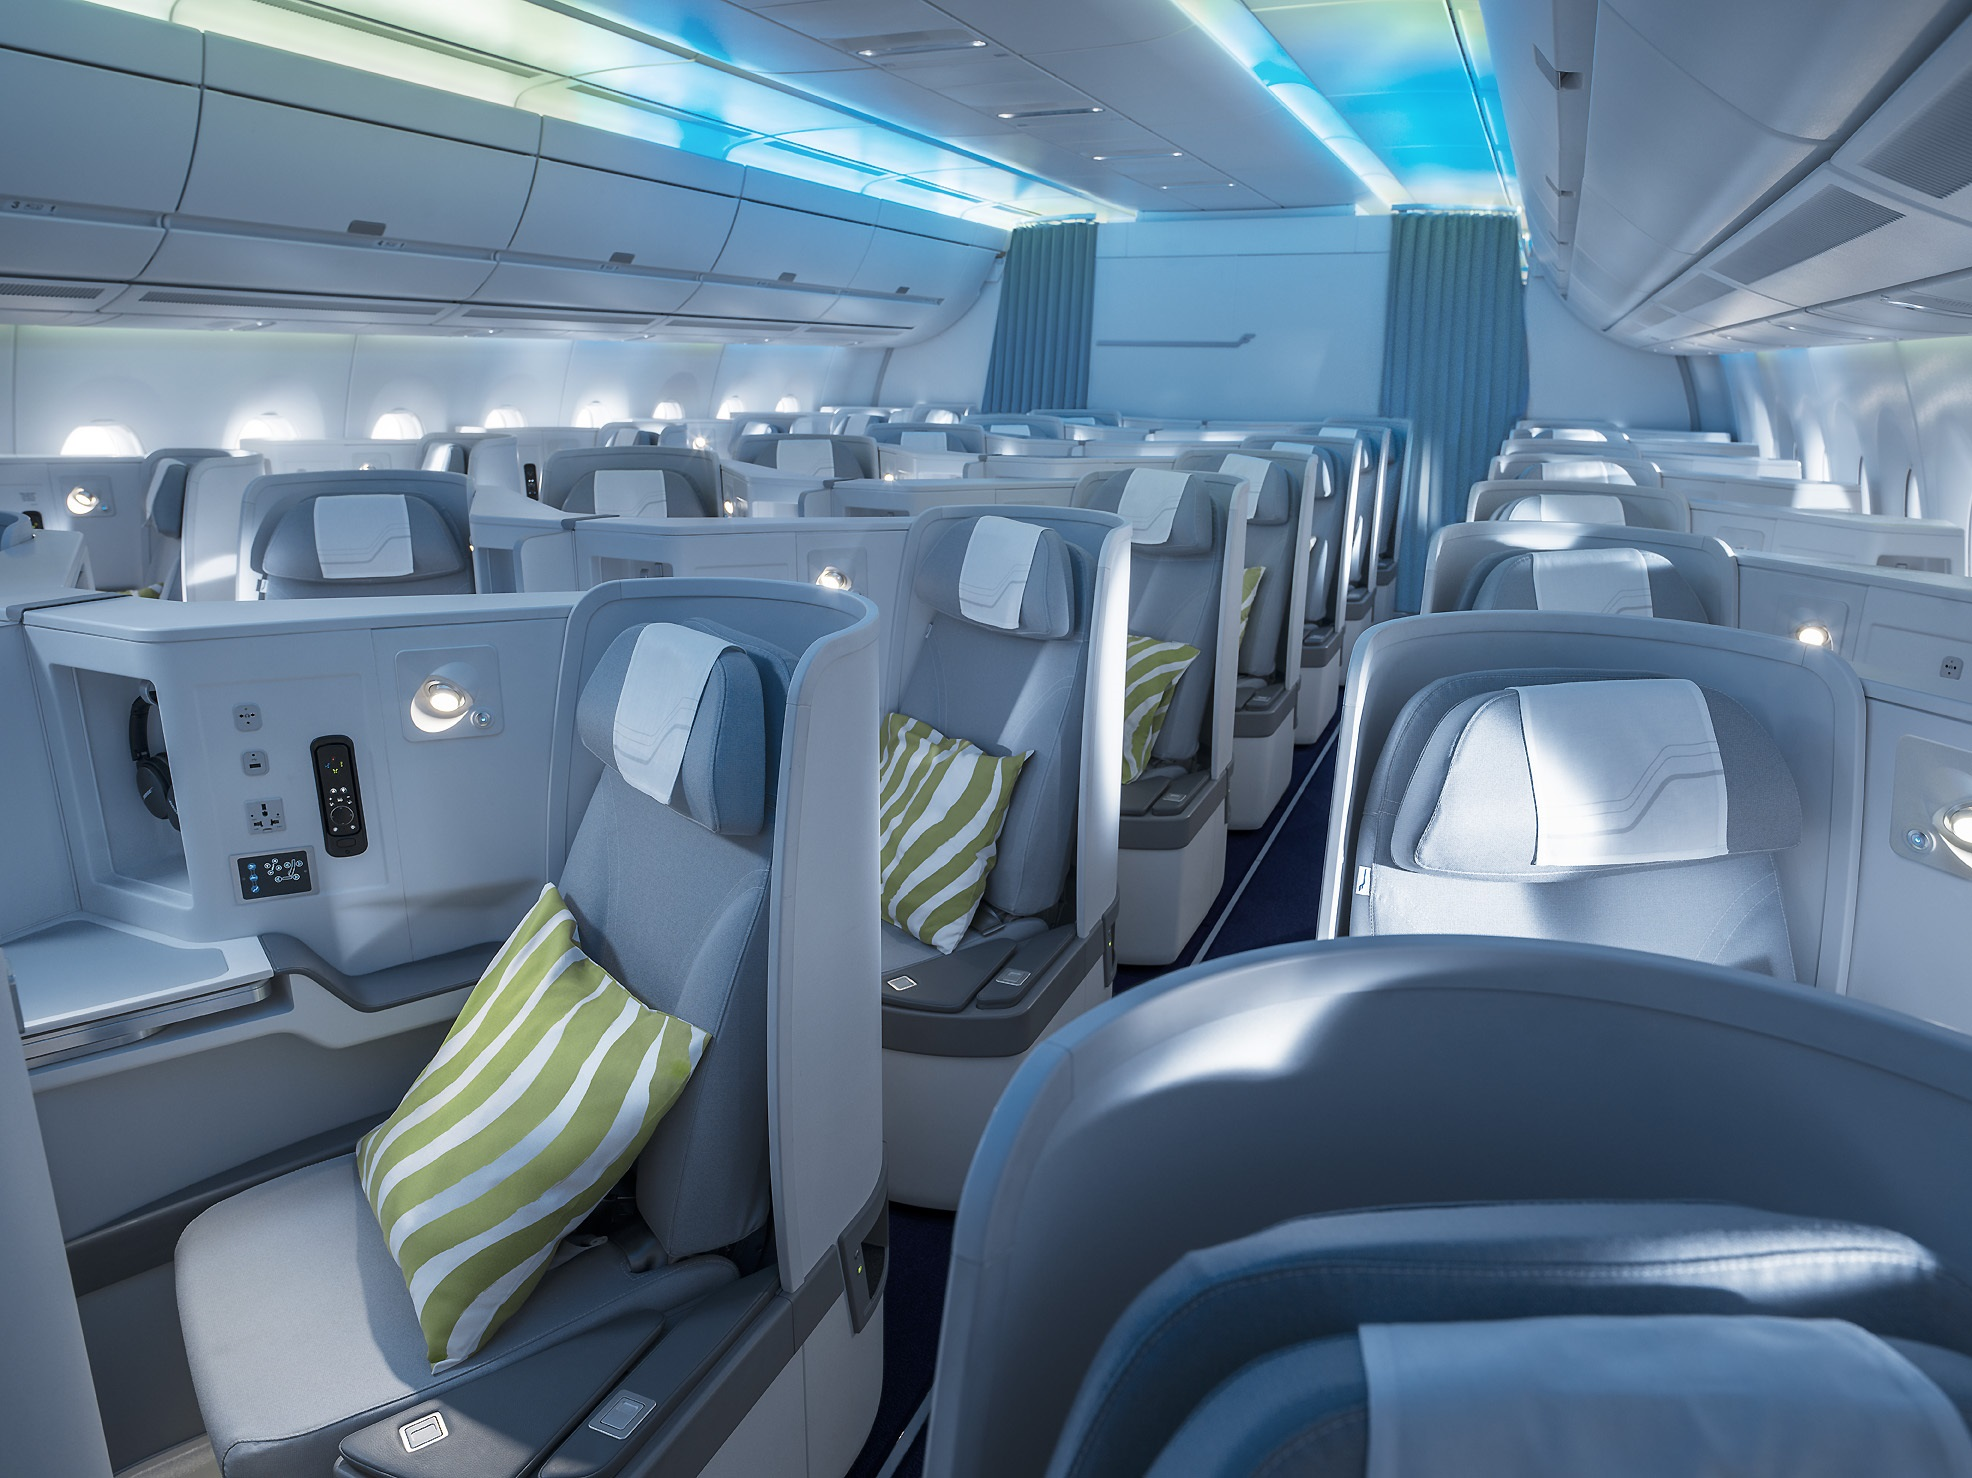 Finnair A350 business class cabin, Northern lights (1)